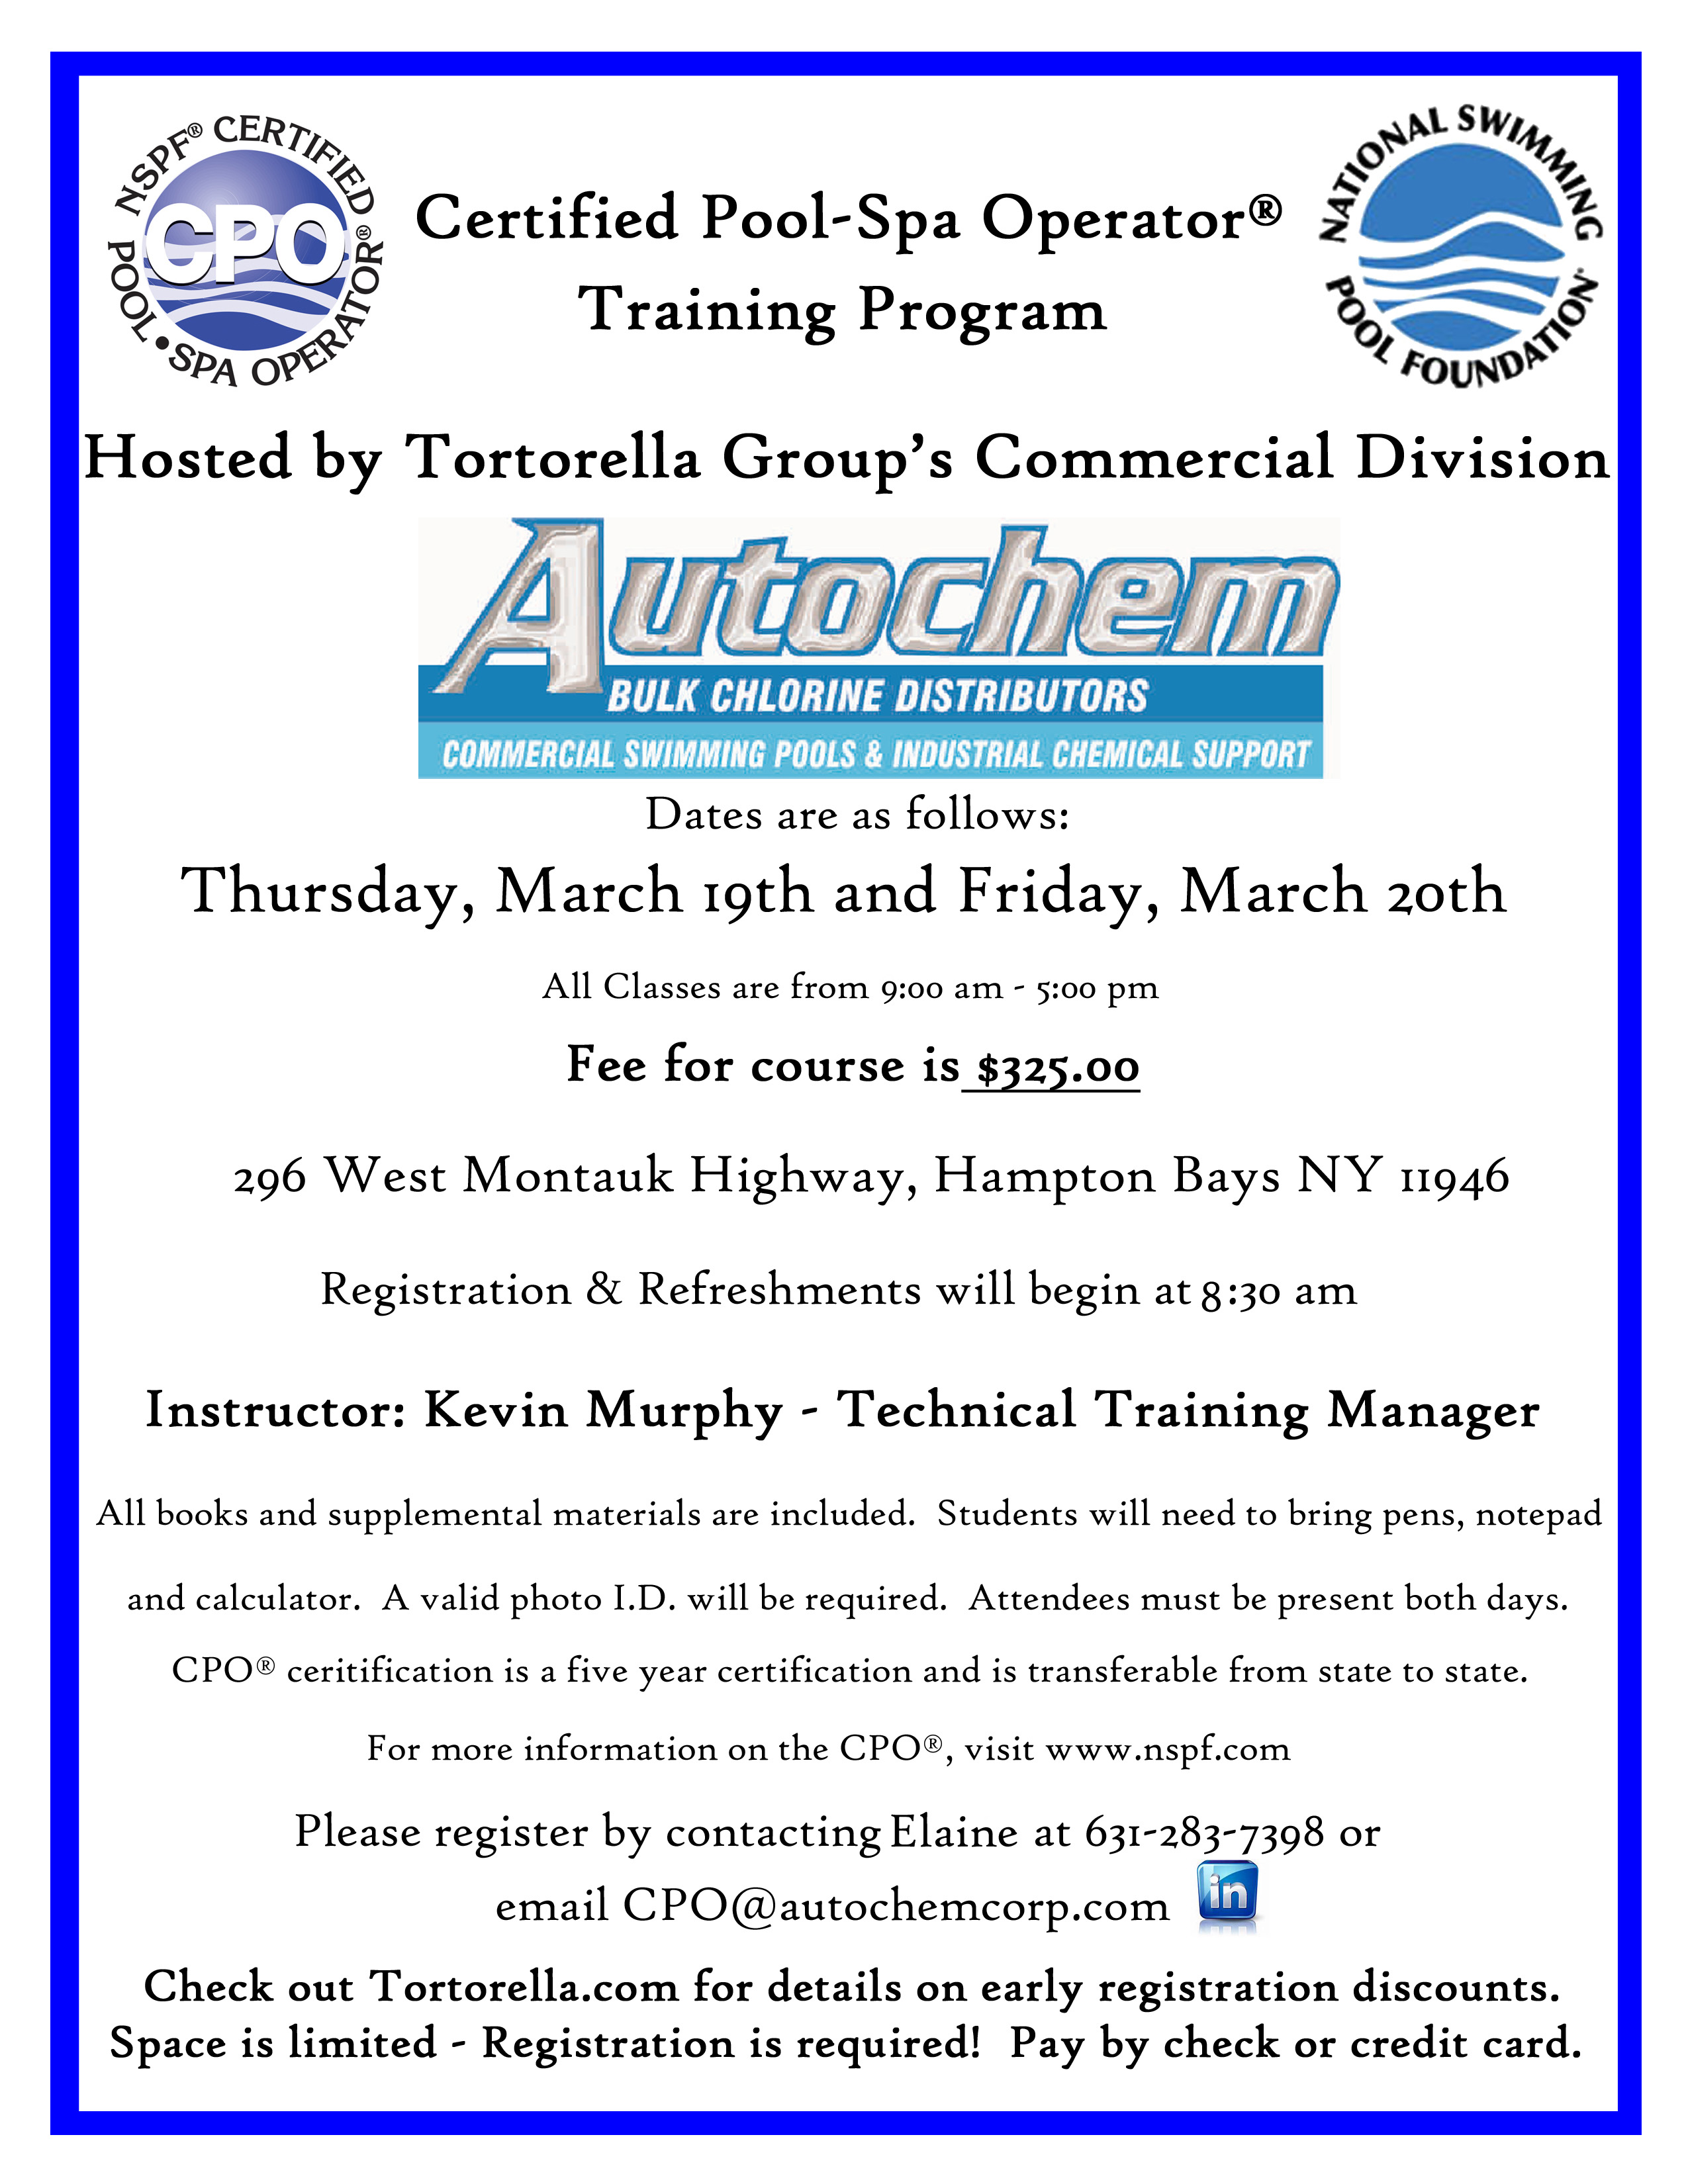 Certified Pool Spa Operator Training Program Being Held March 19th